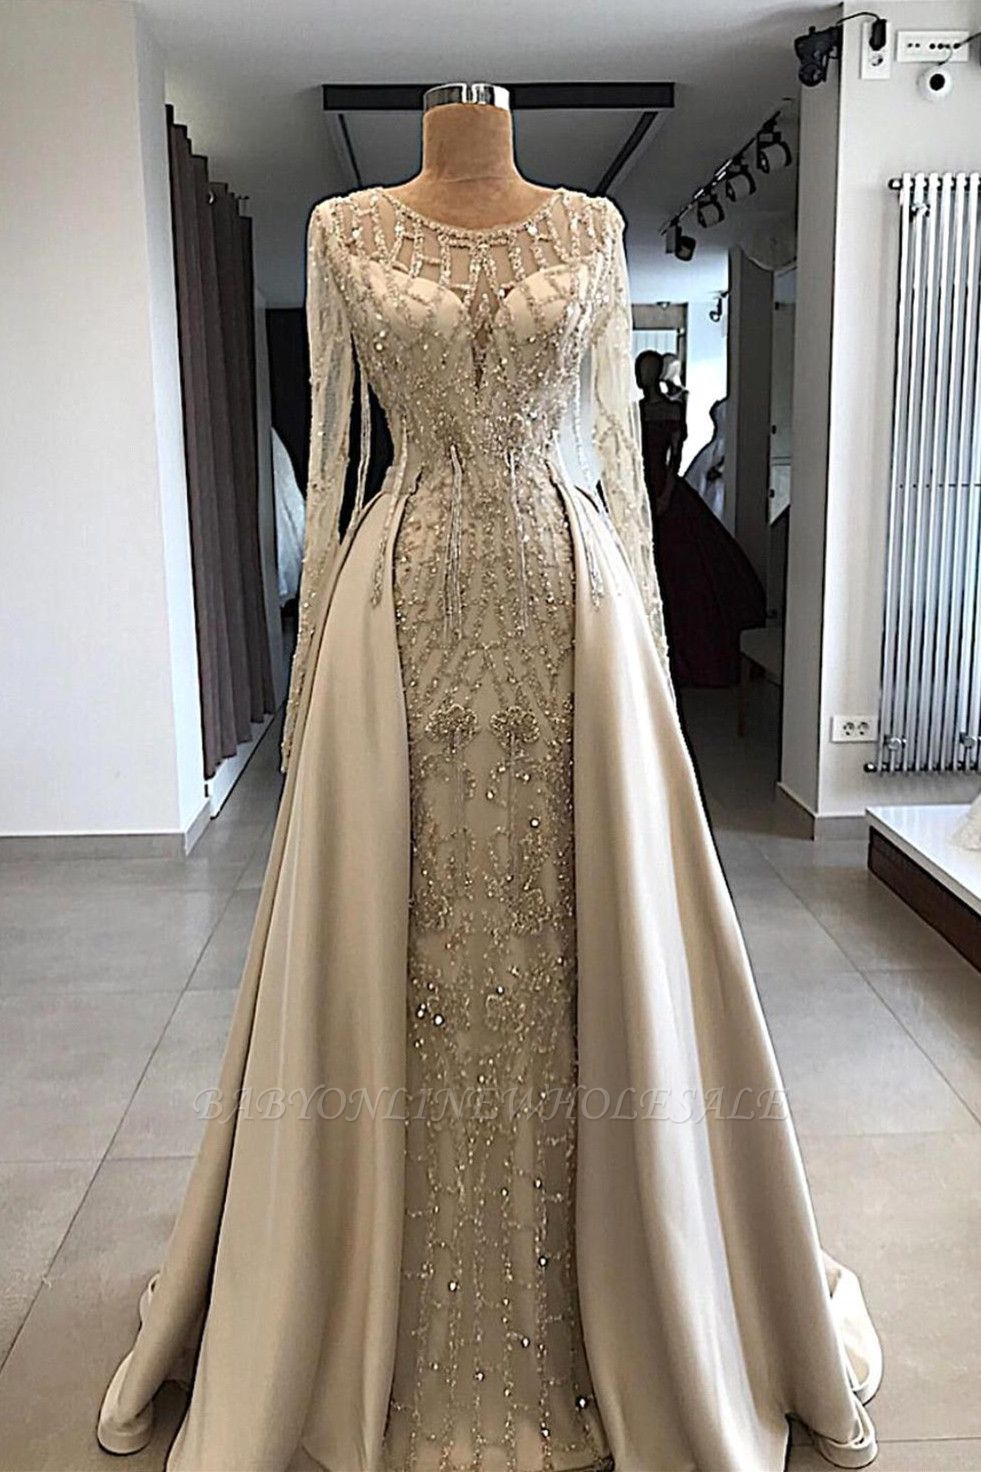 Shining Beaded Long Sleeves Round Neck Prom Dresses With Over Skirt A Line Evening Gowns Long Sleeve Bridal Gown Sparkly Prom Dresses Champagne Prom Dress [ 1472 x 981 Pixel ]